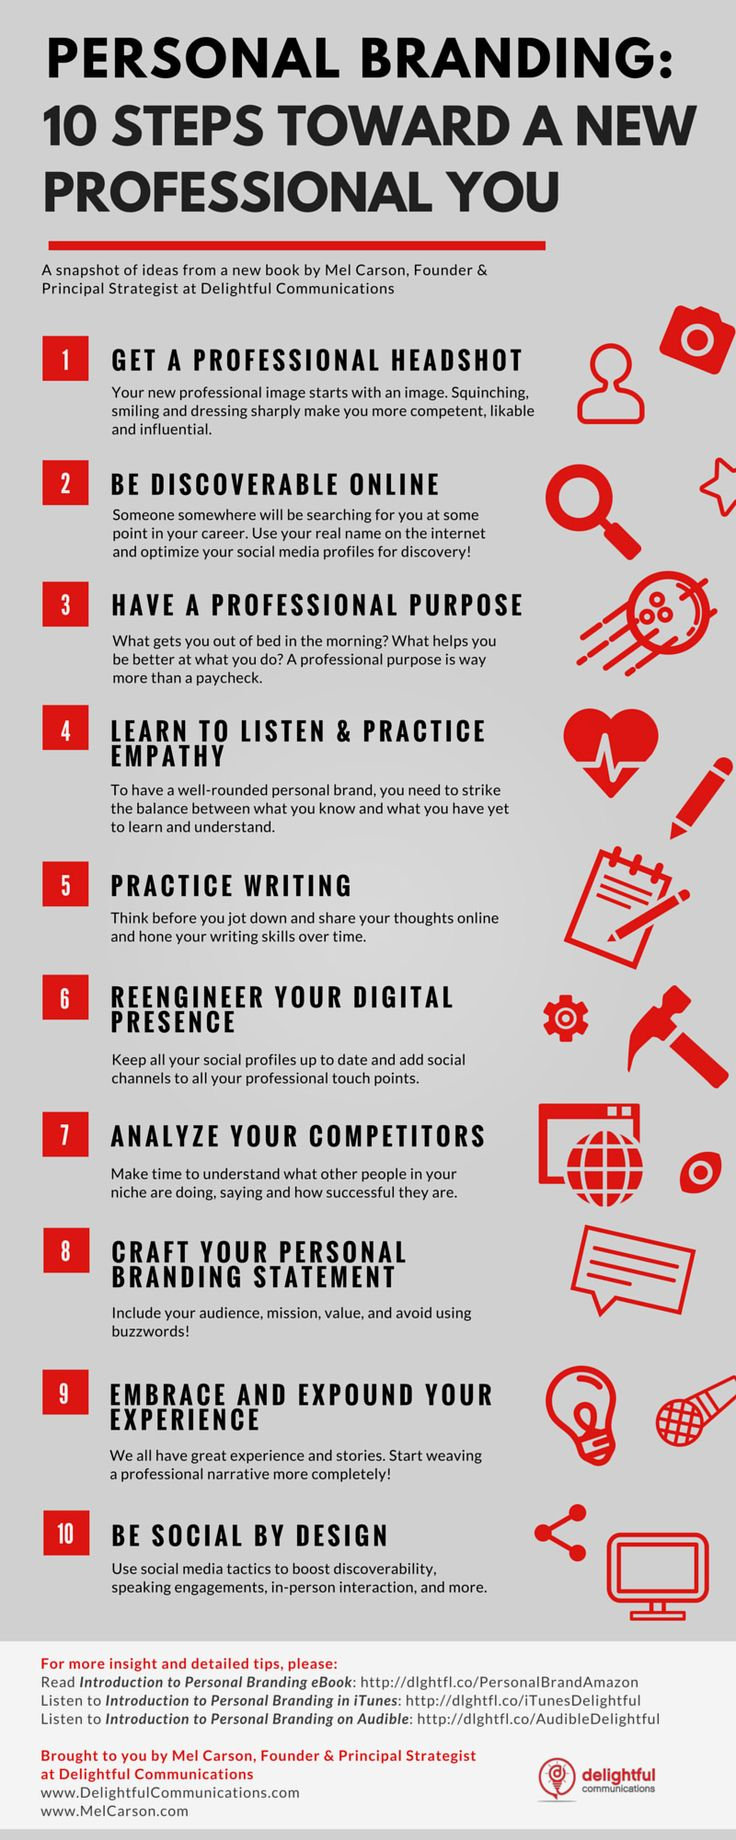 Your Personal Branding Strategy in 10 Steps (Infographic) - http://www.webmarketshop.com/your-personal-branding-strategy-in-10-steps-infographic/